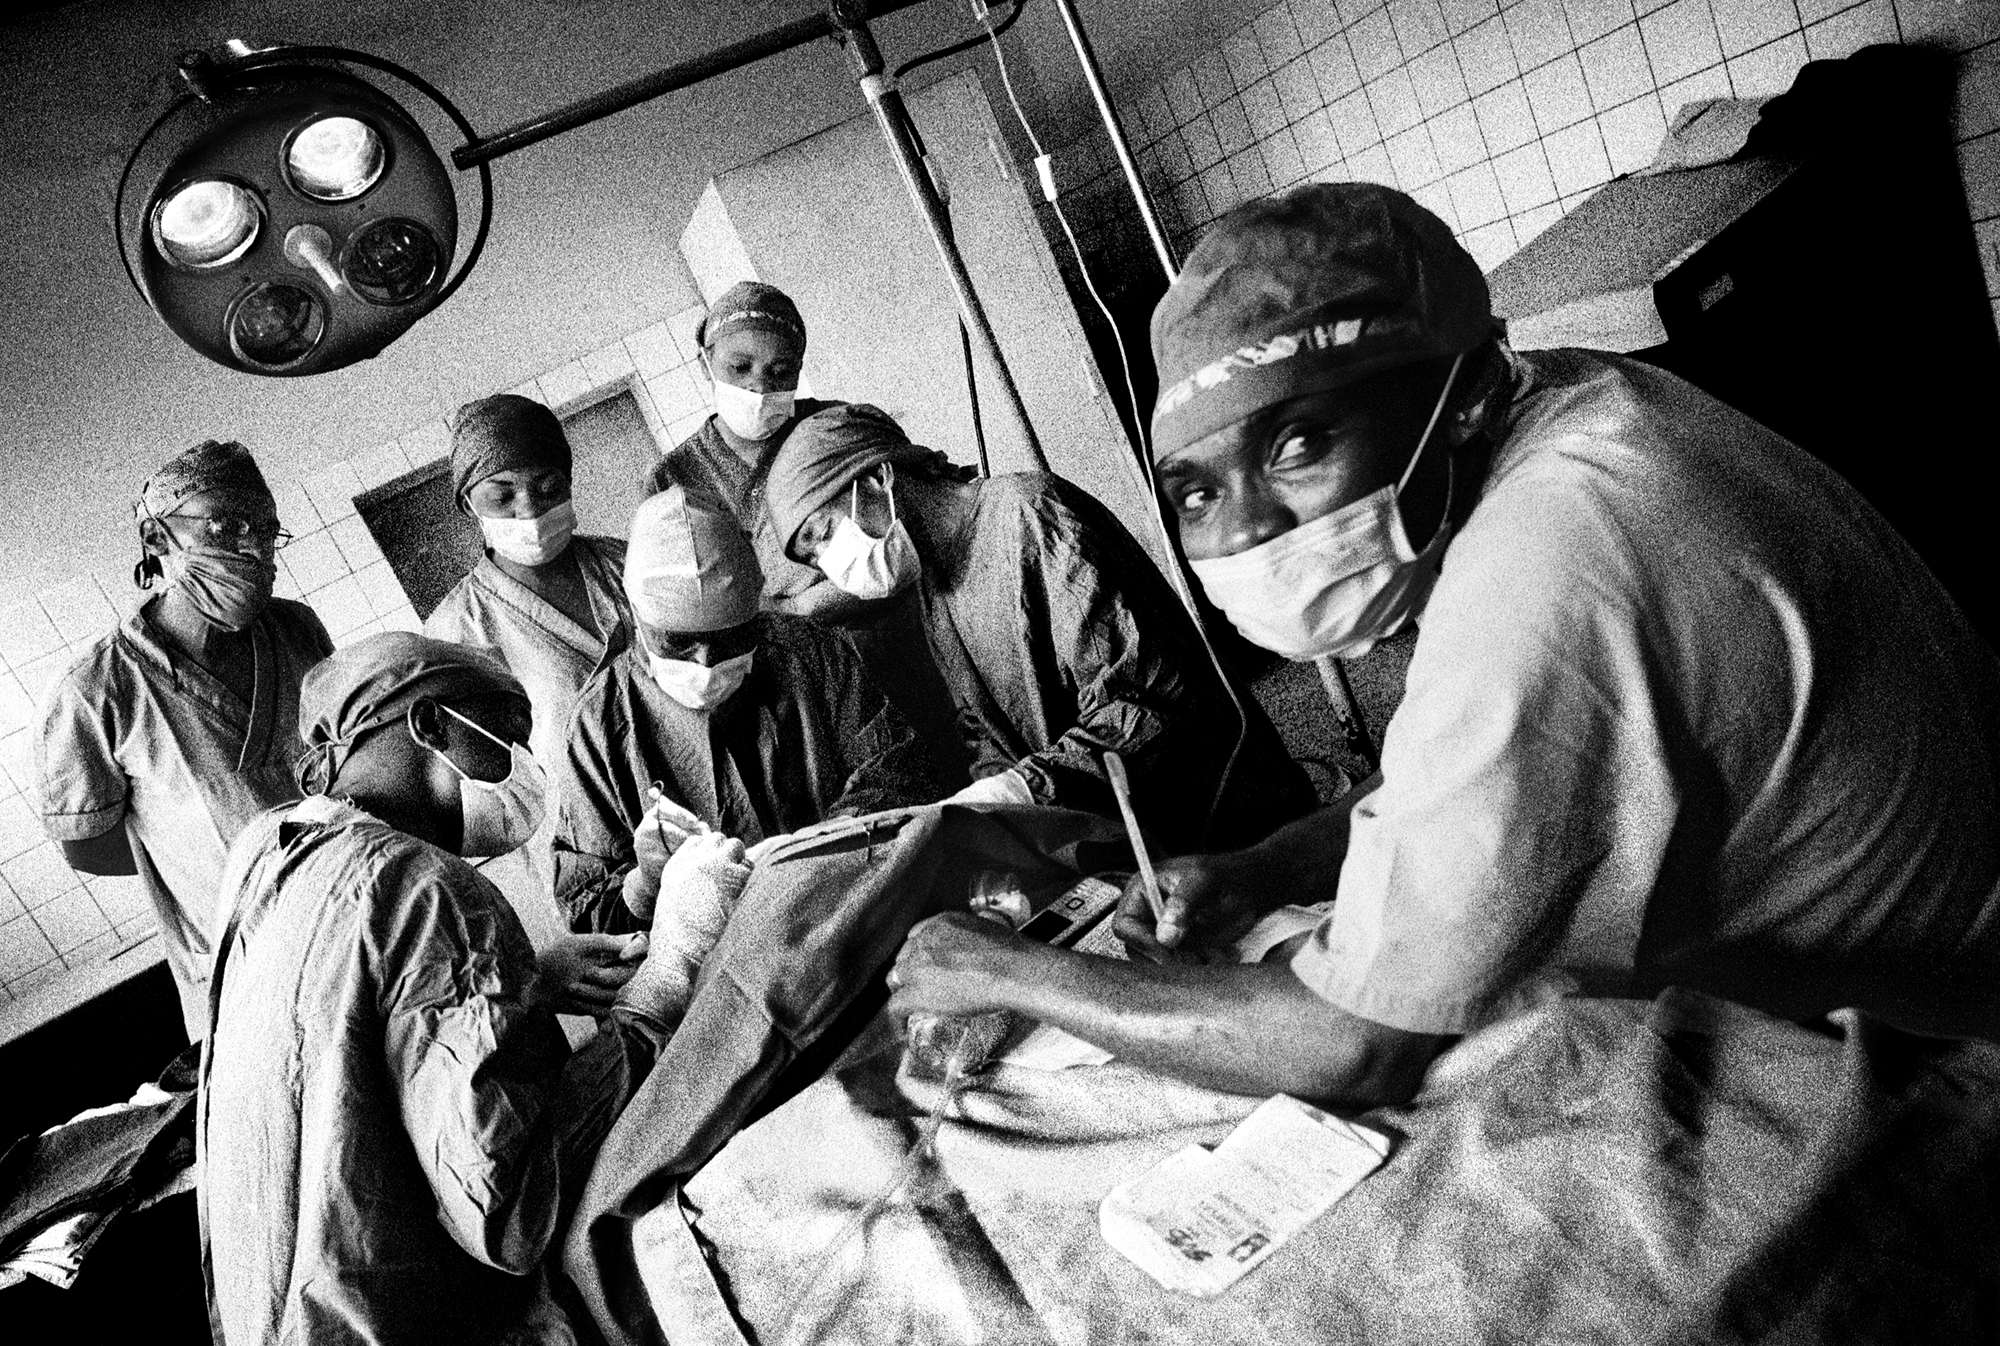 A baby being operated on by physicians at Panzi Hospital